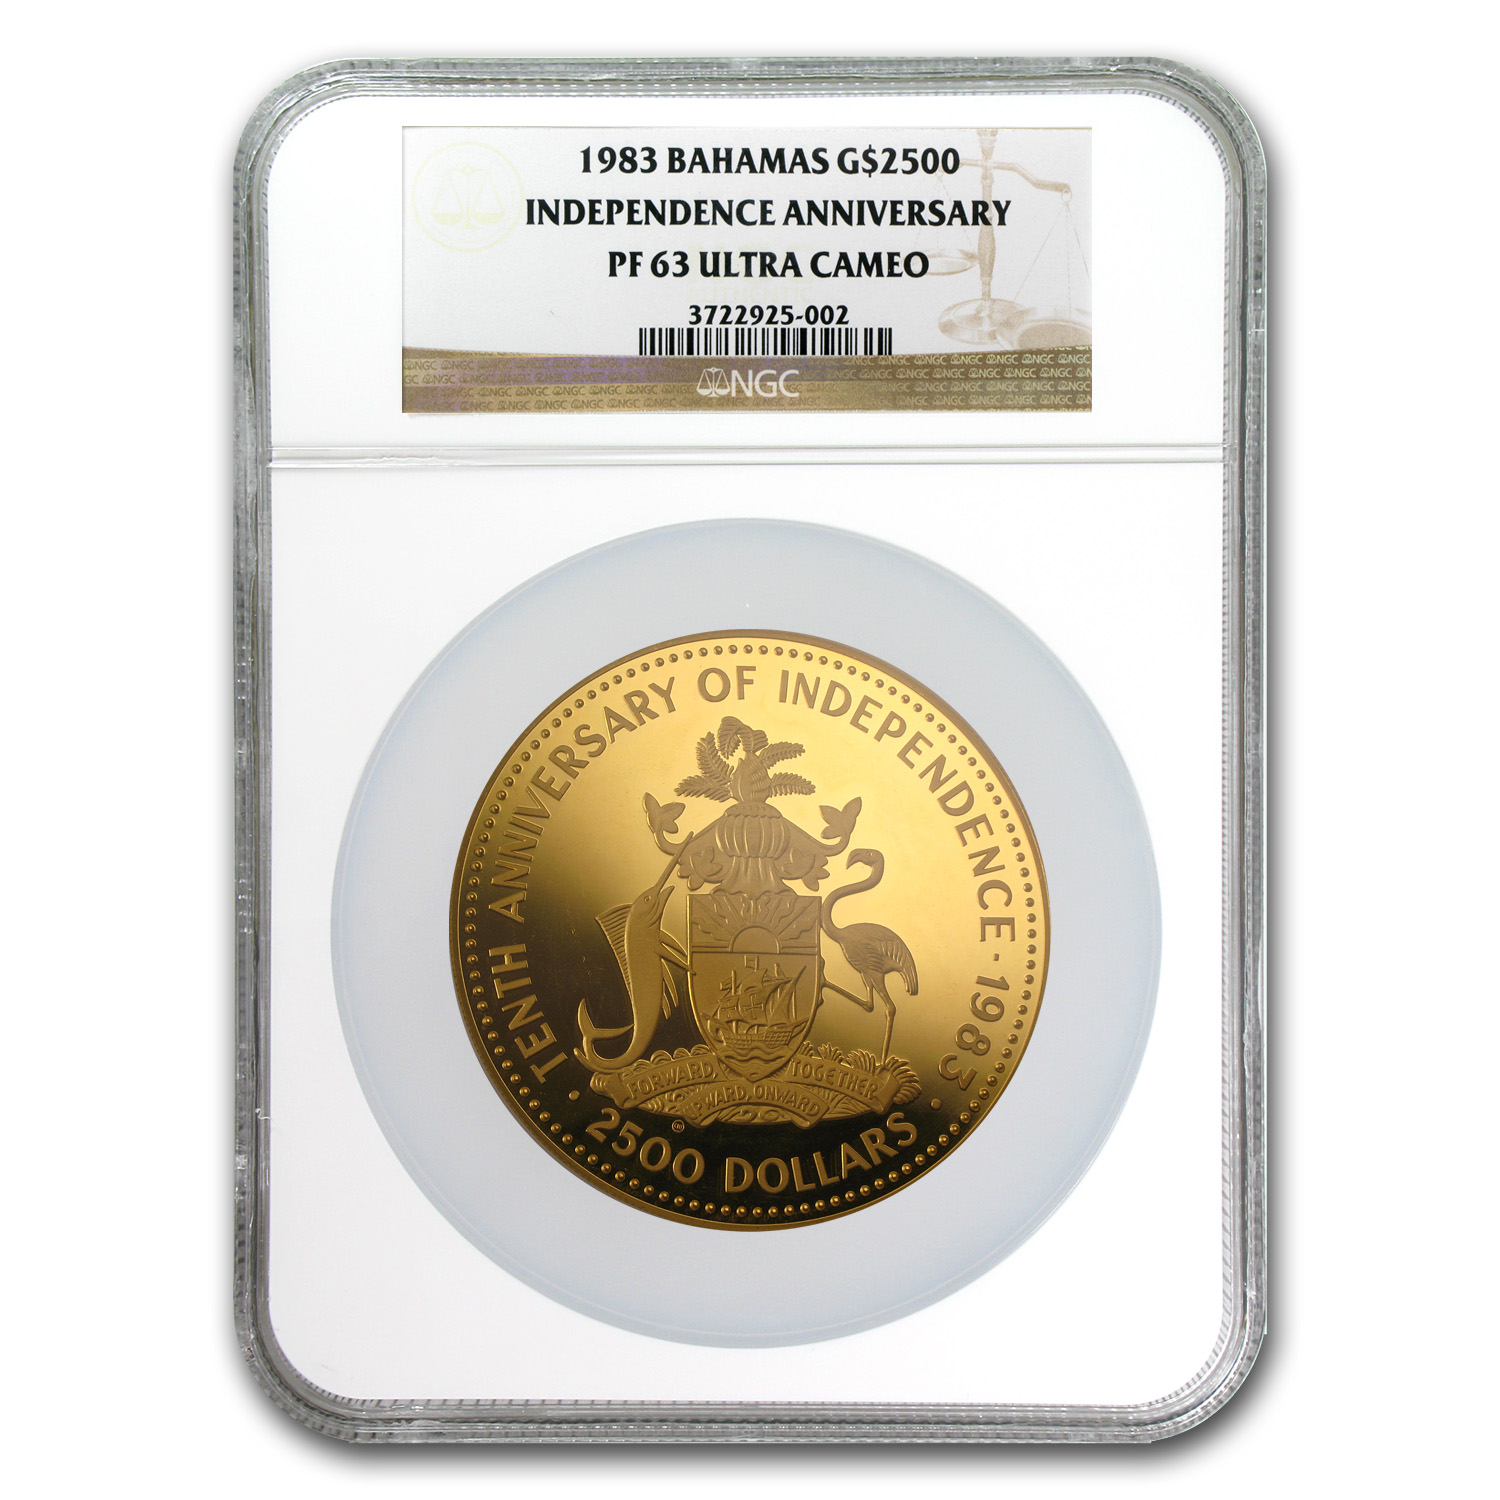 Bahamas 1983 $2500 Gold (12 oz) Independence NGC PF-63 UCAM